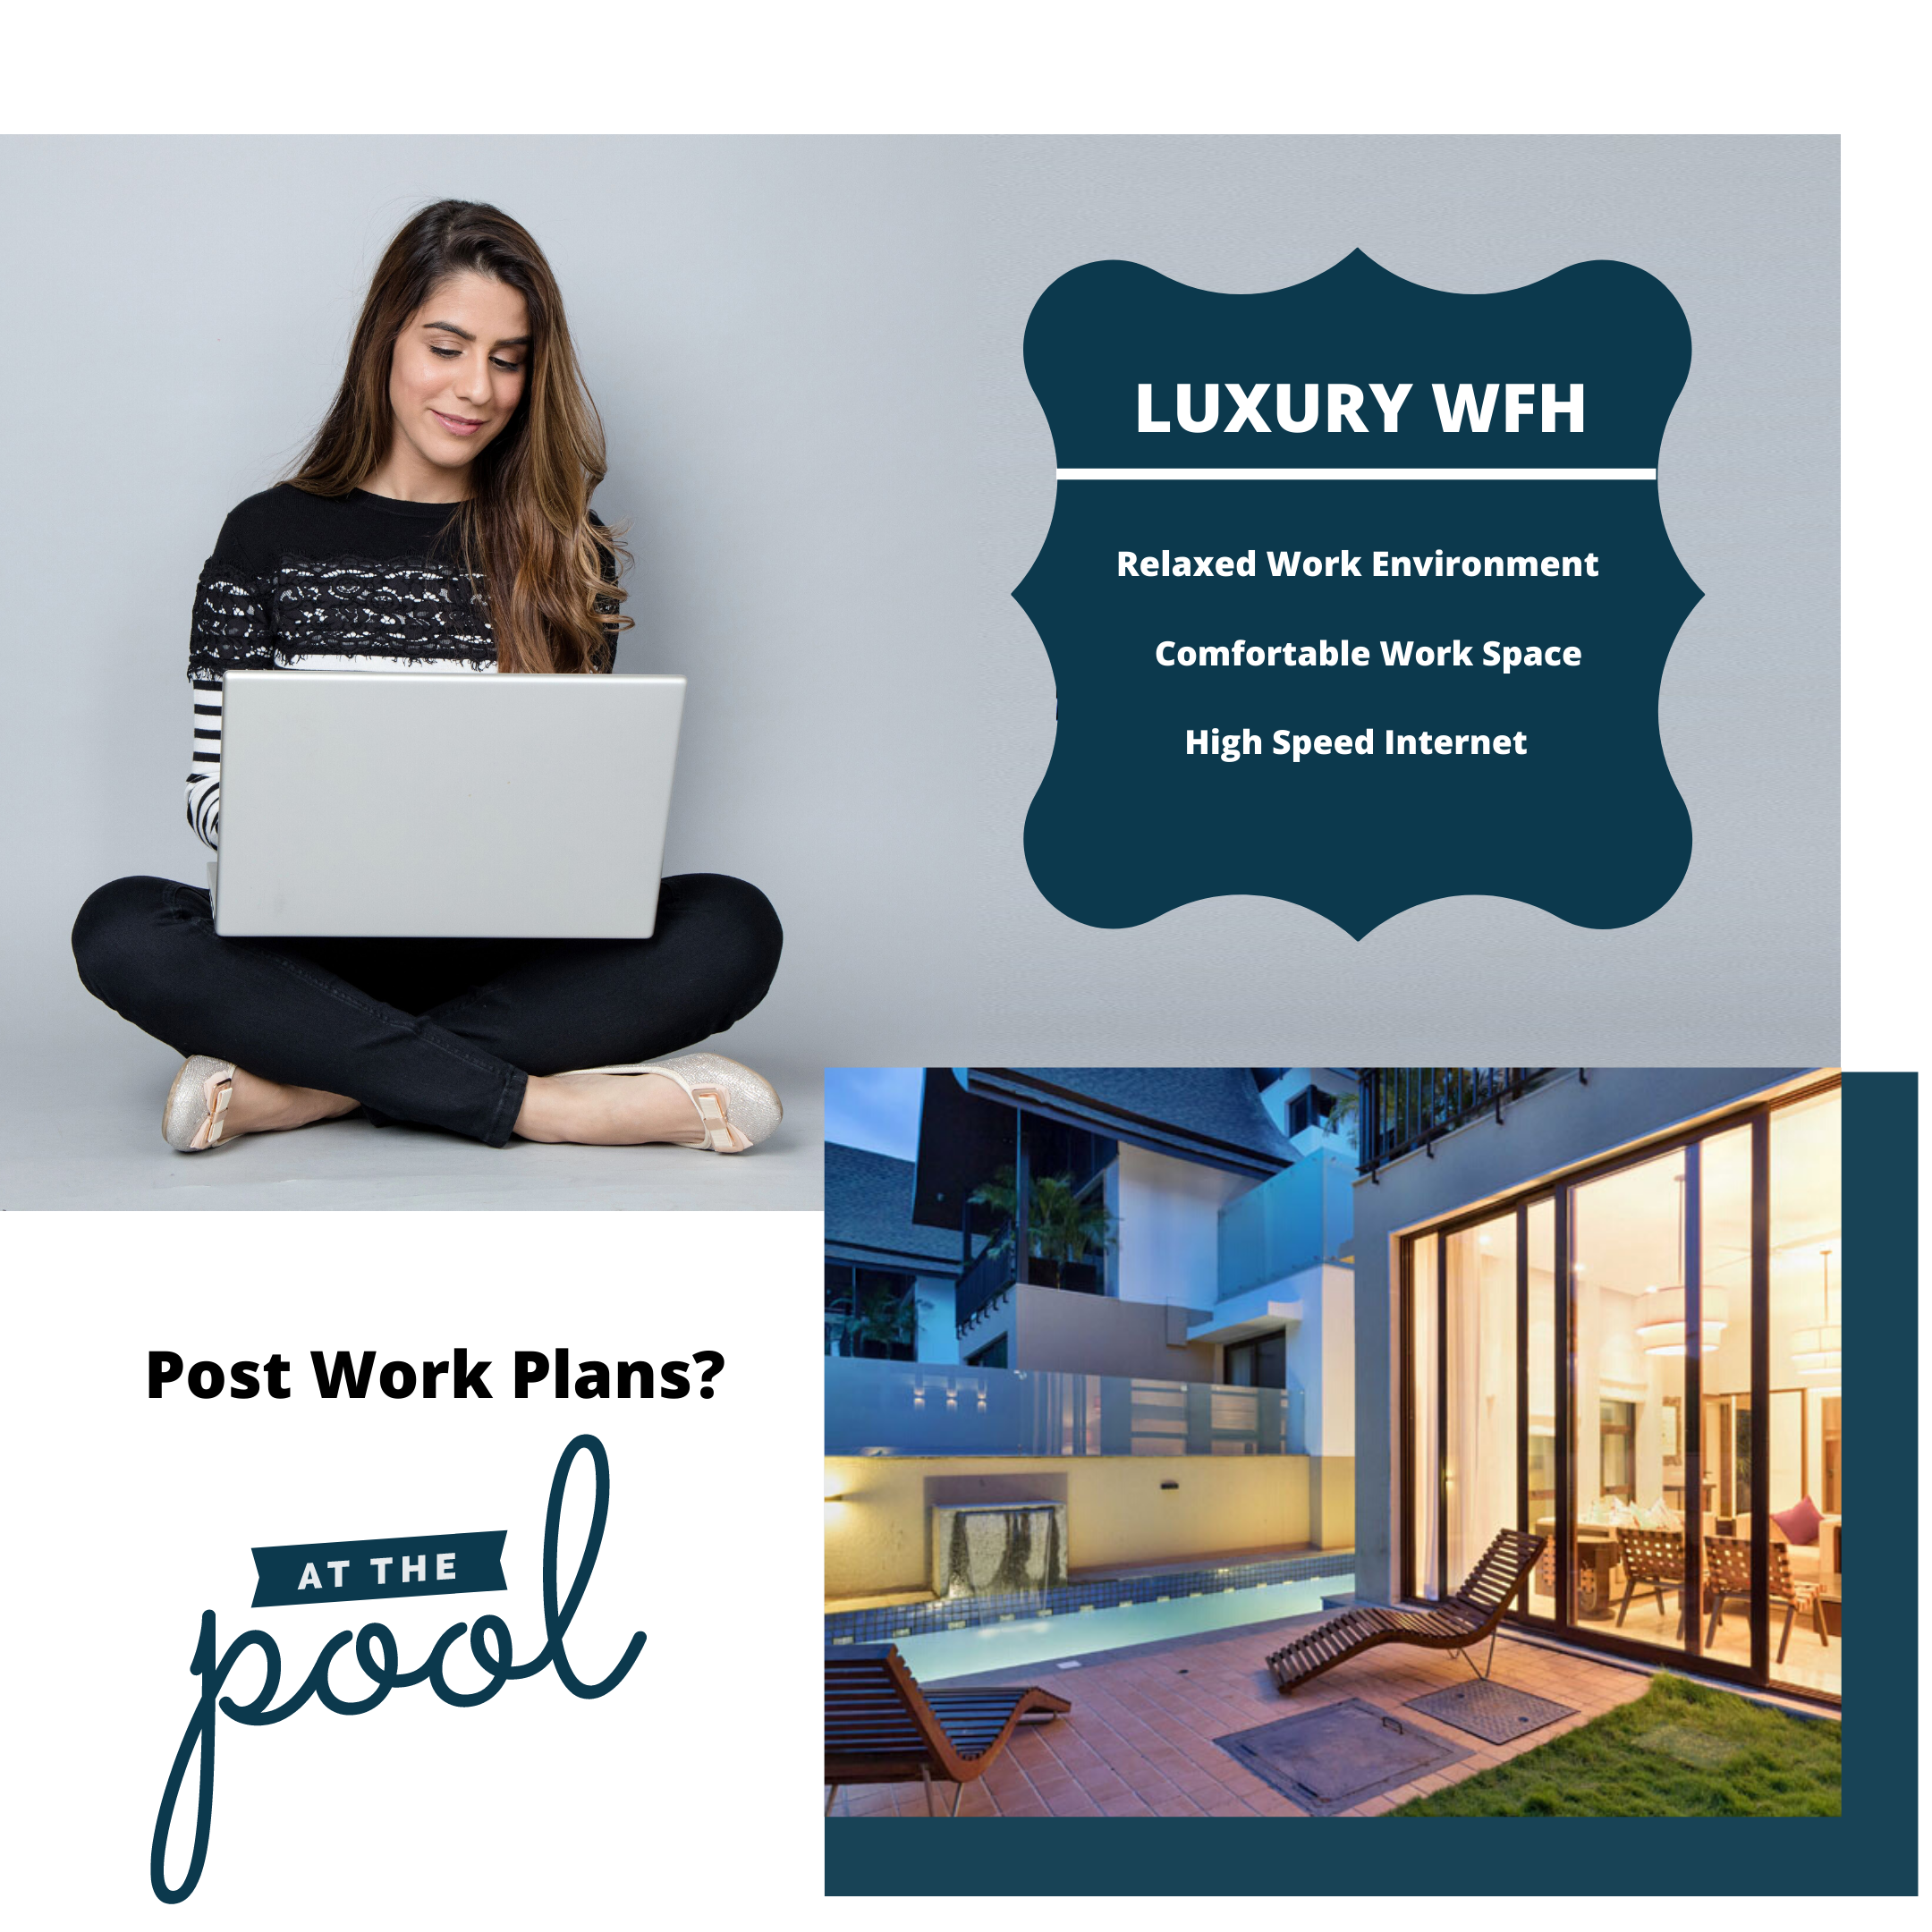 Work From Home can sometimes take a toll on you, but when you are working in a Luxury Villa, Work from Home doesn't feel so difficult after all.  Book Luxury Private Pool Villa.  Contact :- 8380810000  #VillaGoa #villasingoa #rentvilla #LuxuryVillasinGoa #luxuryhomes #micasasucasa #PrivatePoolVillas #Goa #Travel #TravelGoals #Traveller #traveltogoa #Travelwithfriends #travelwithfamily #exploregoa #pool #instatravel